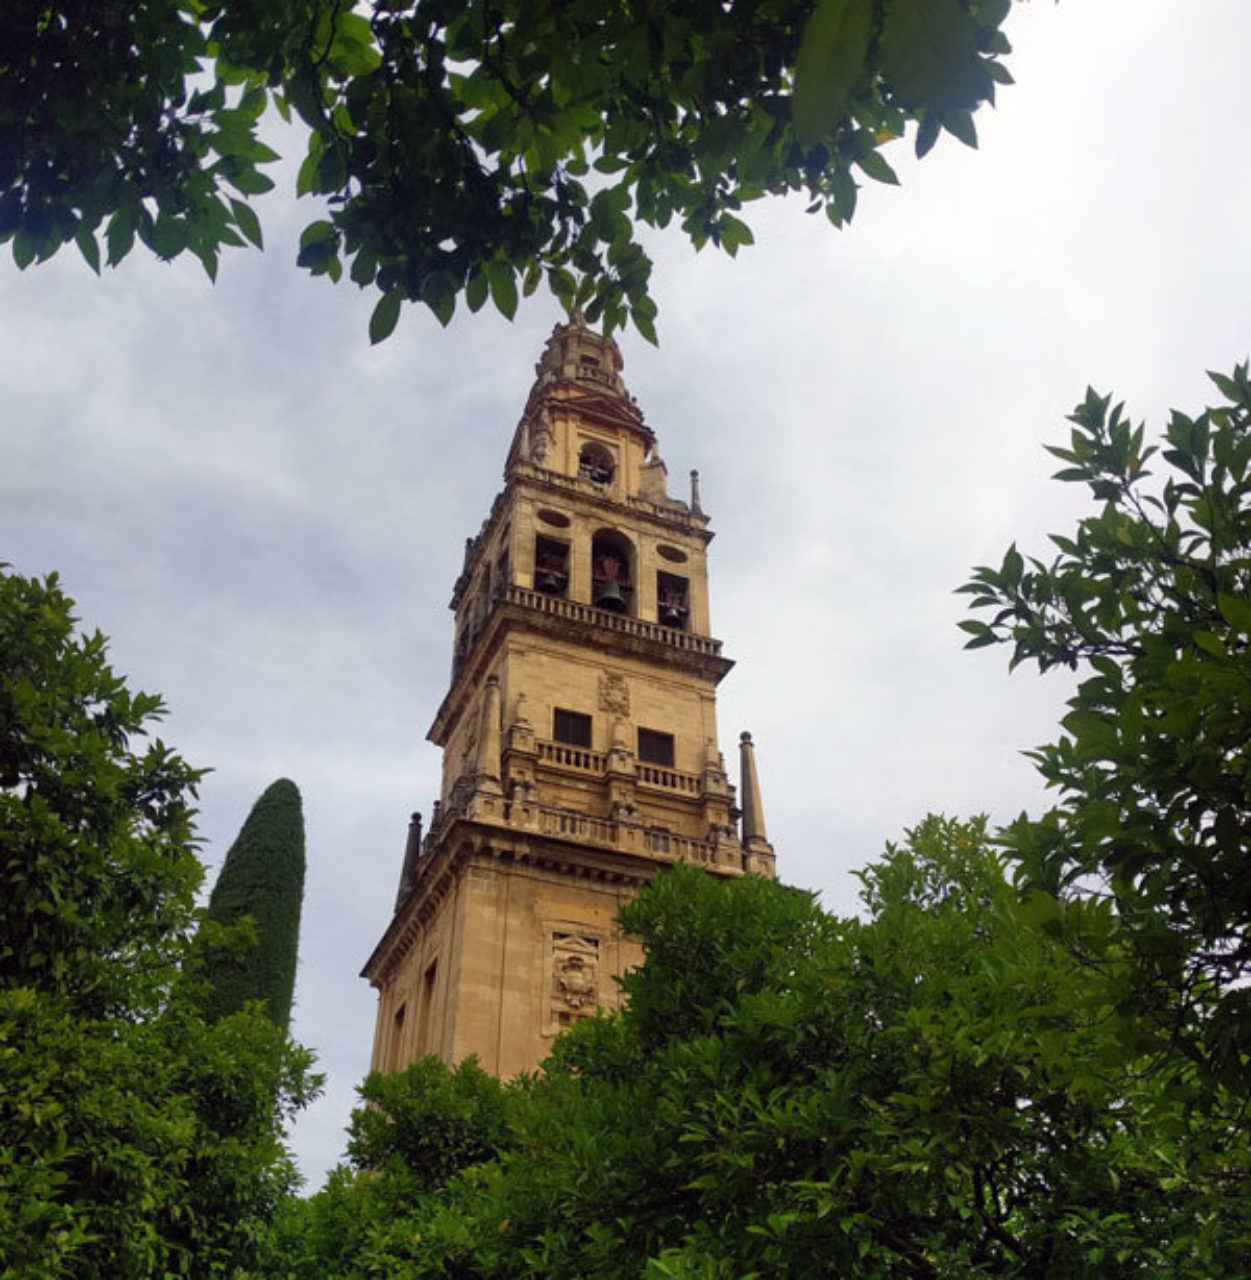 The bell tower at La Mezquita de Córdoba, Spain, which was previously a minaret